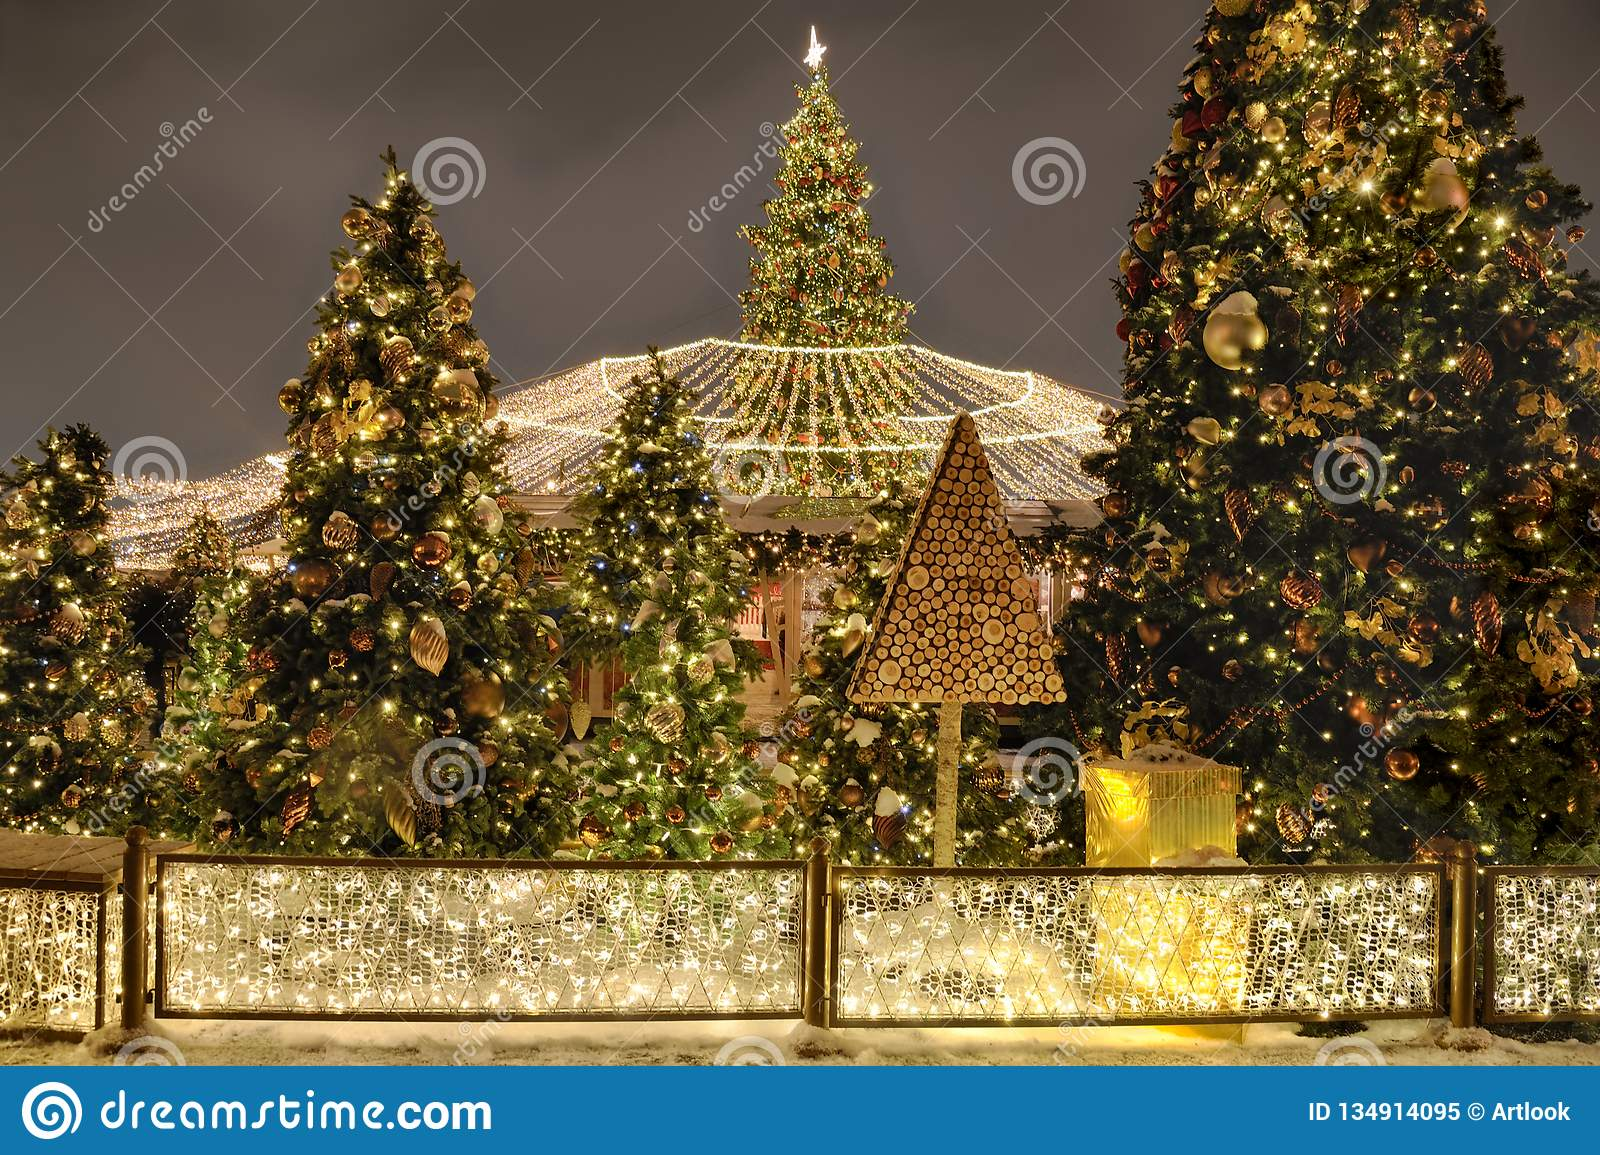 new-year-trees-canopy-lights -manezhnaya-square-night-moscow-russia-christmas-festive-decorations-upcoming-134914095.jpg & New Year Trees With Canopy Of Lights At Manezhnaya Square At Night ...